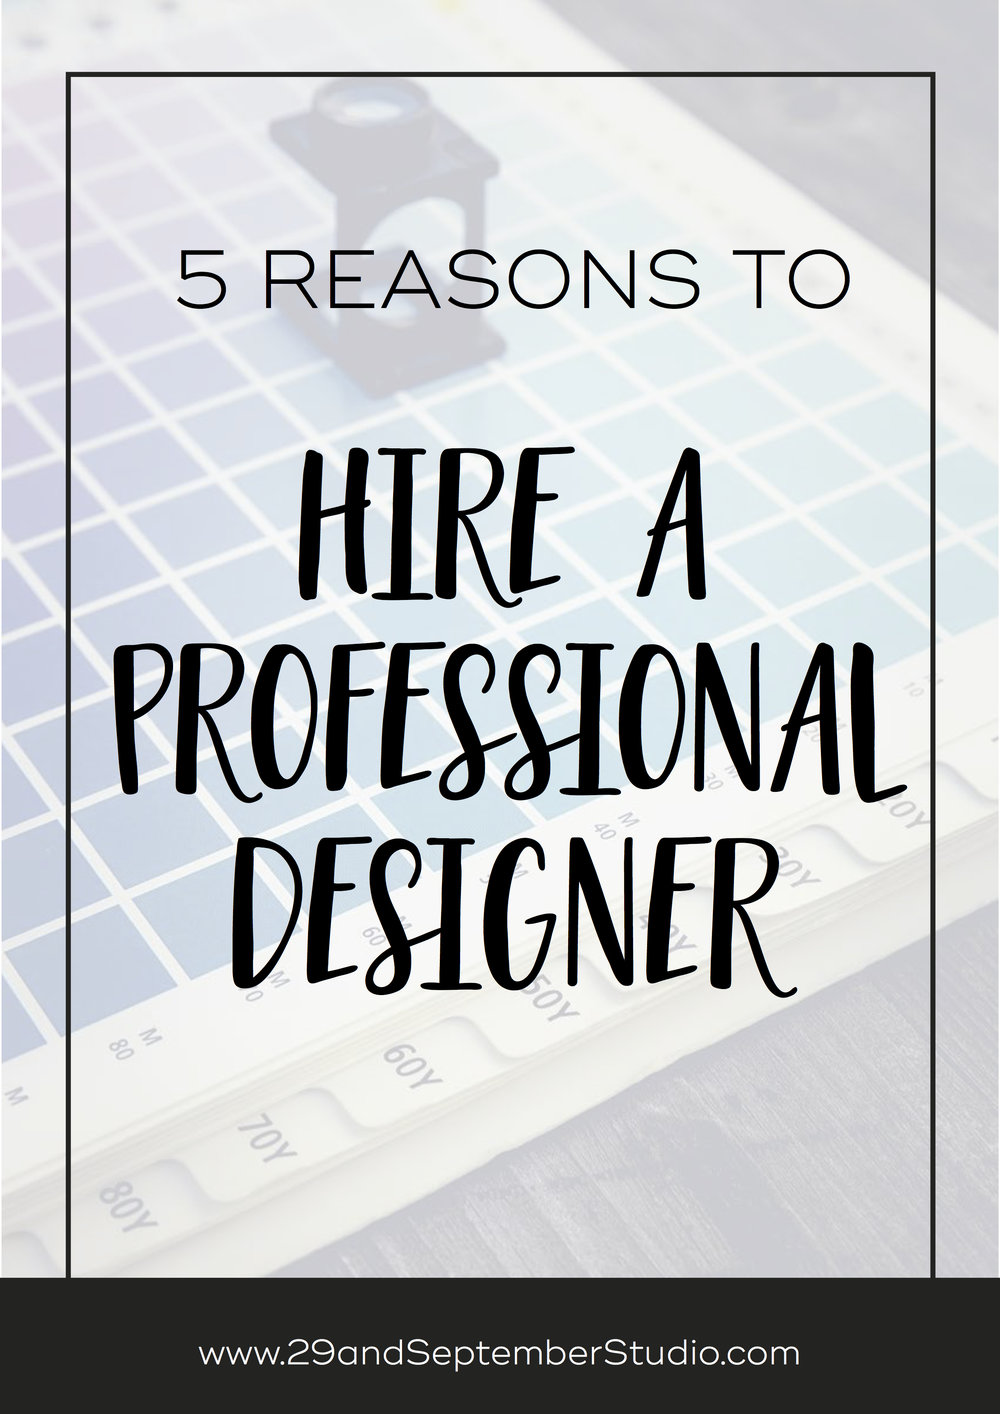 5 reasons why you should hire a professional designer. 29andSeptember Studio